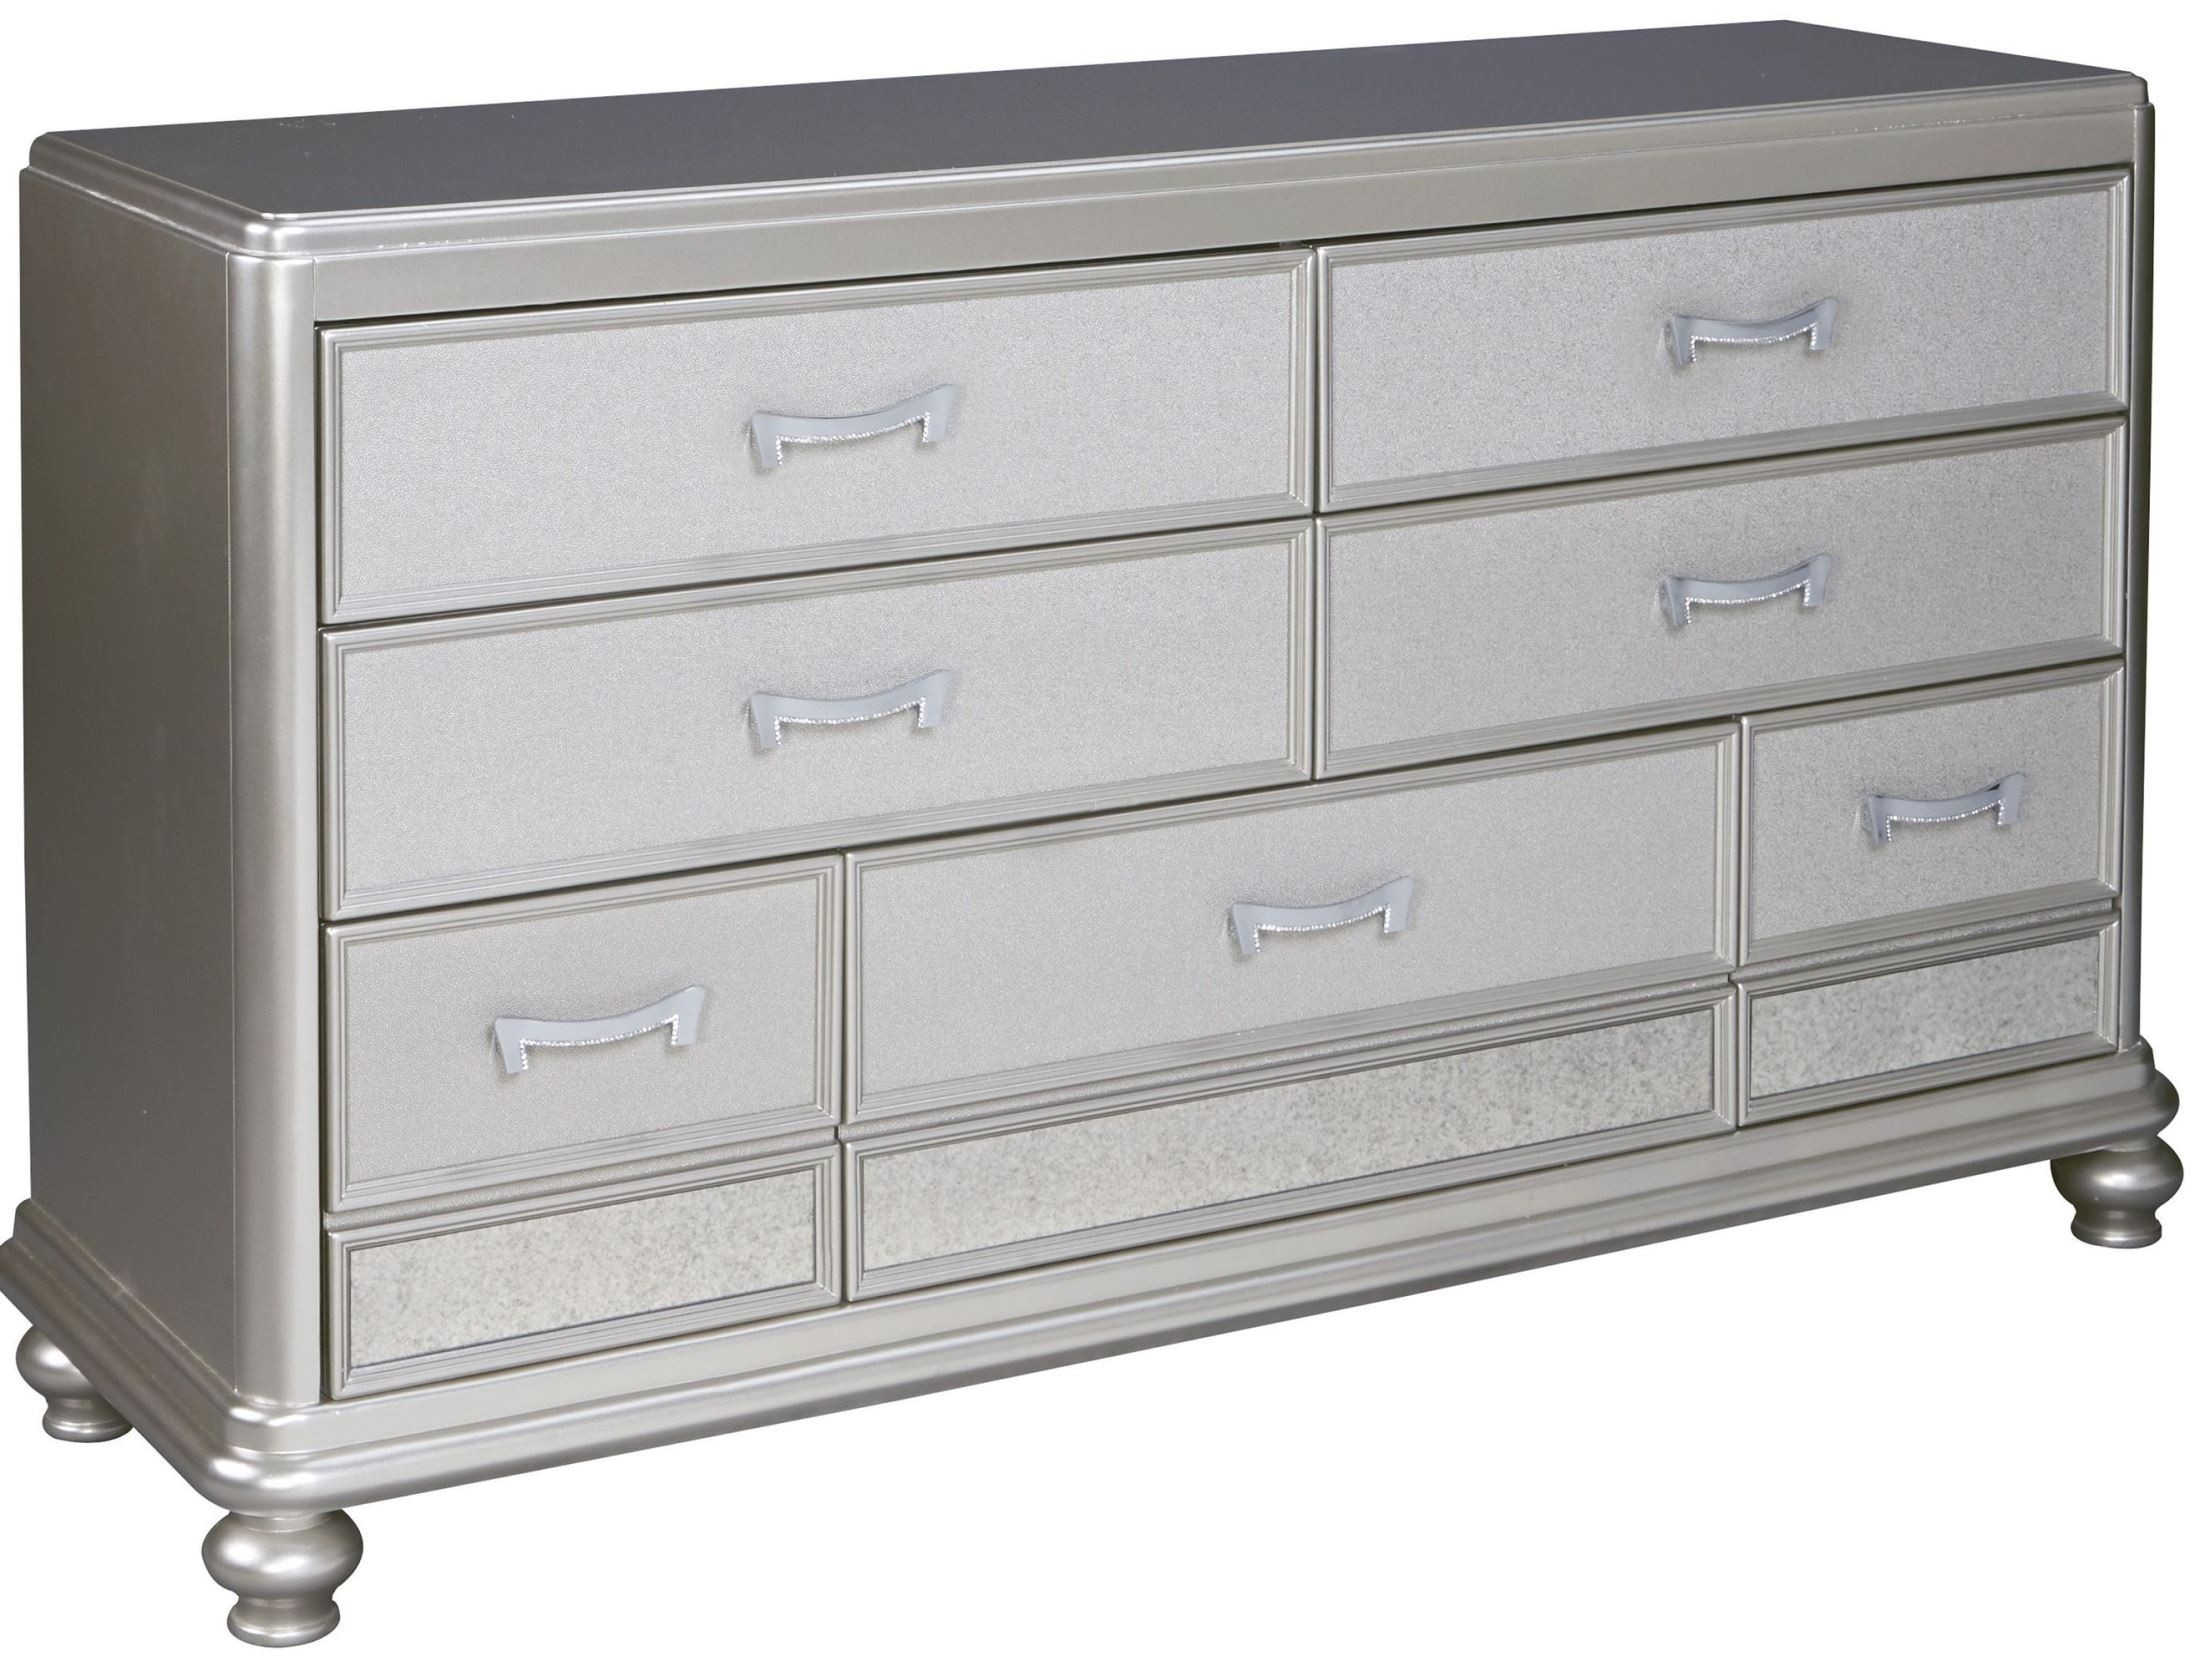 Coralayne Silver 7 Drawer Dresser From Ashley B650 31 Coleman Furniture